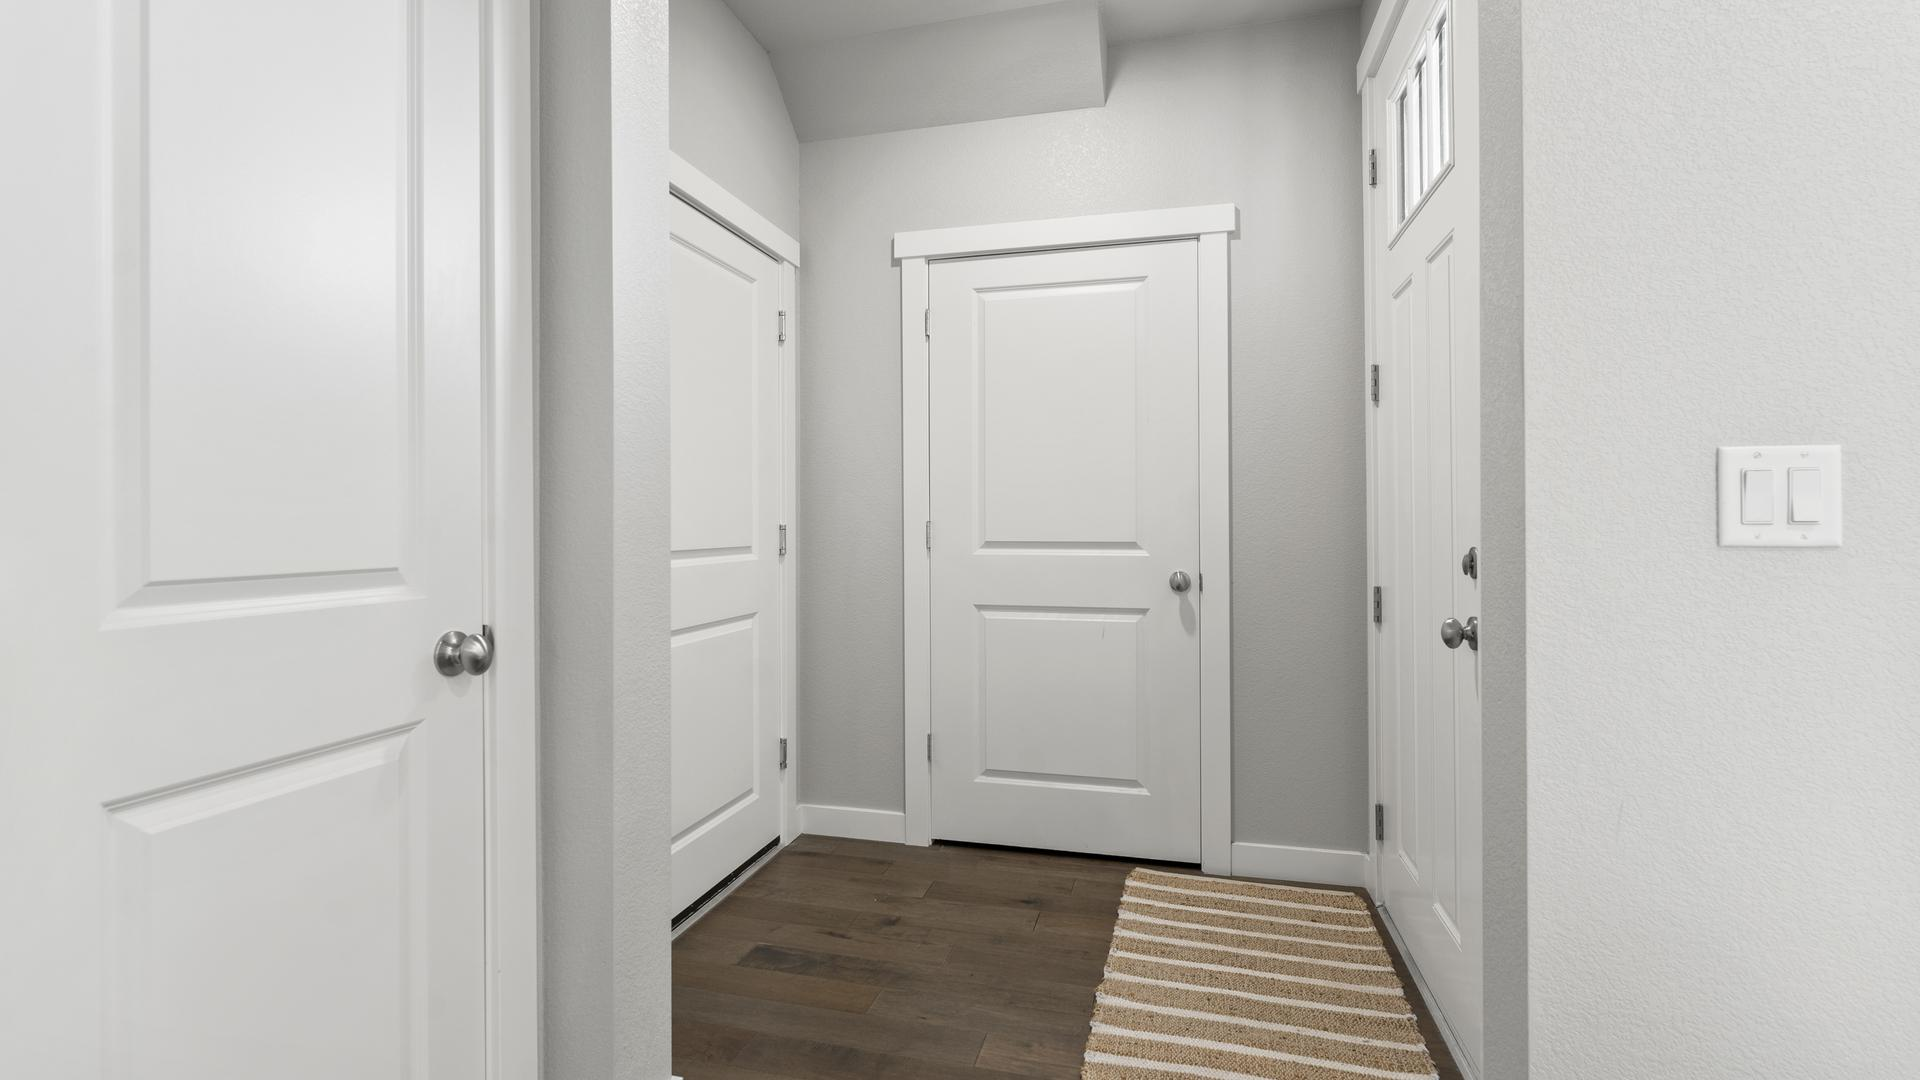 Hallway - Not Actual Home - Finishes Will Vary